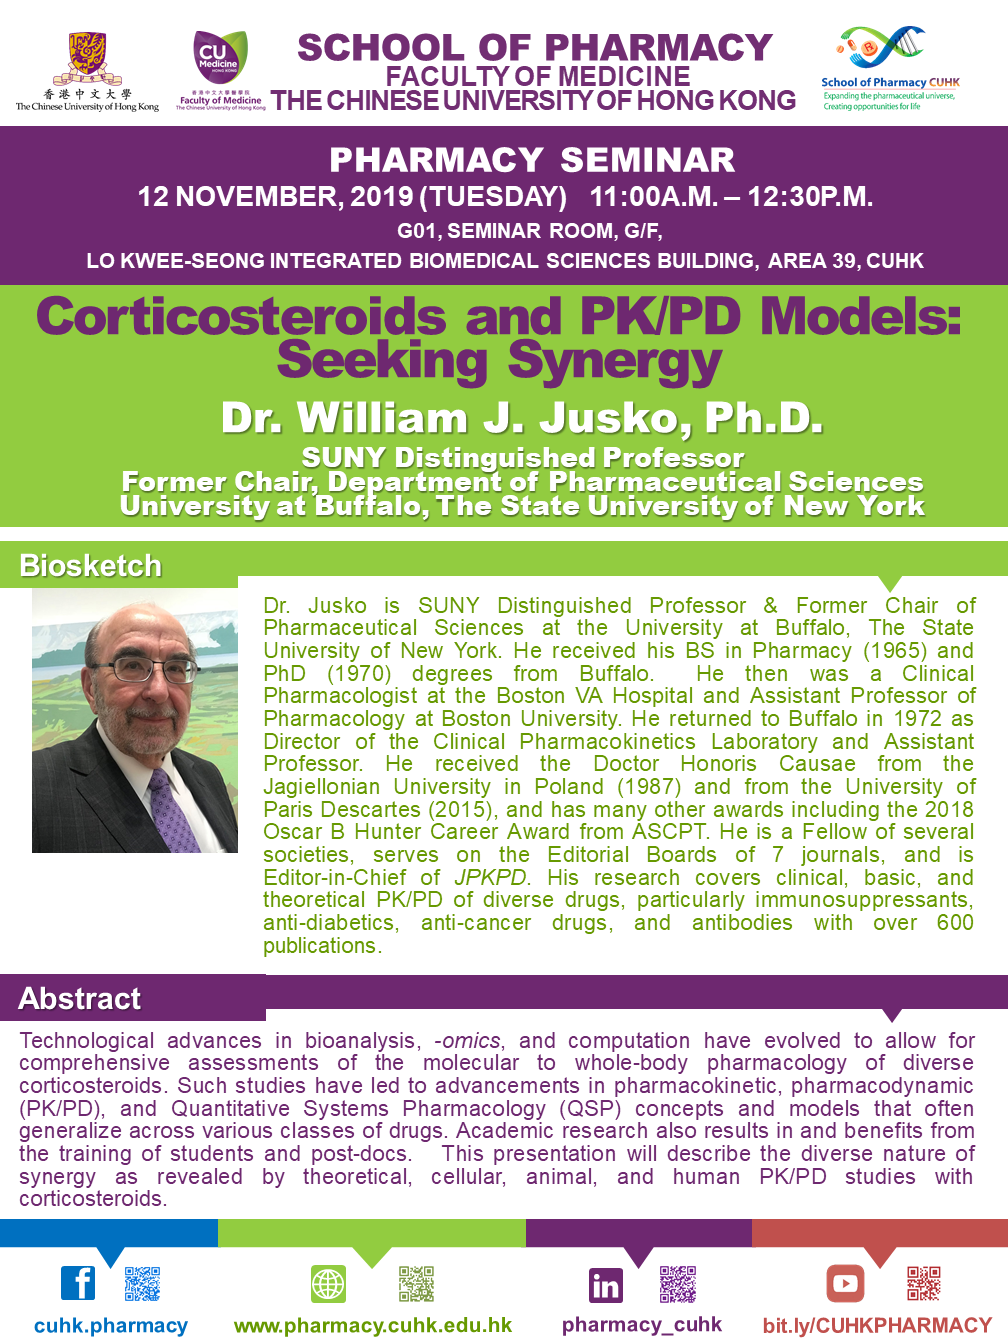 Pharmacy Seminar - Corticosteroids and PK/PD Models: Seeking Synergy